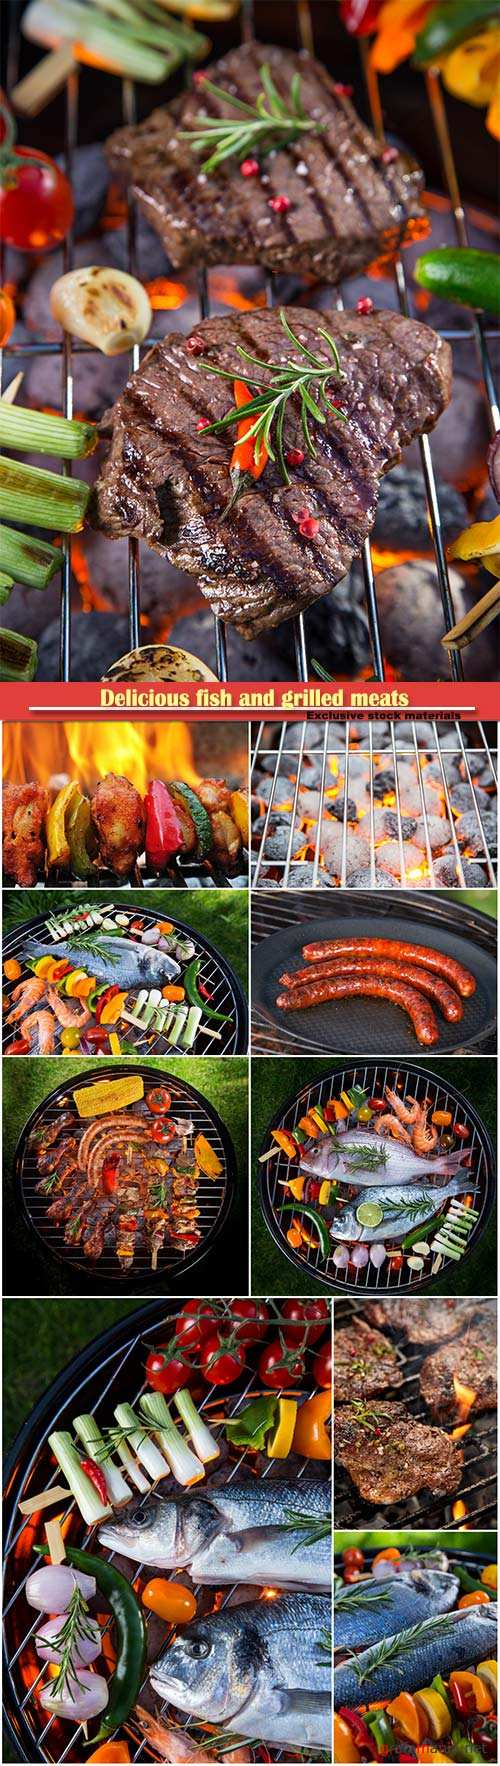 Delicious fish and grilled meats with vegetables